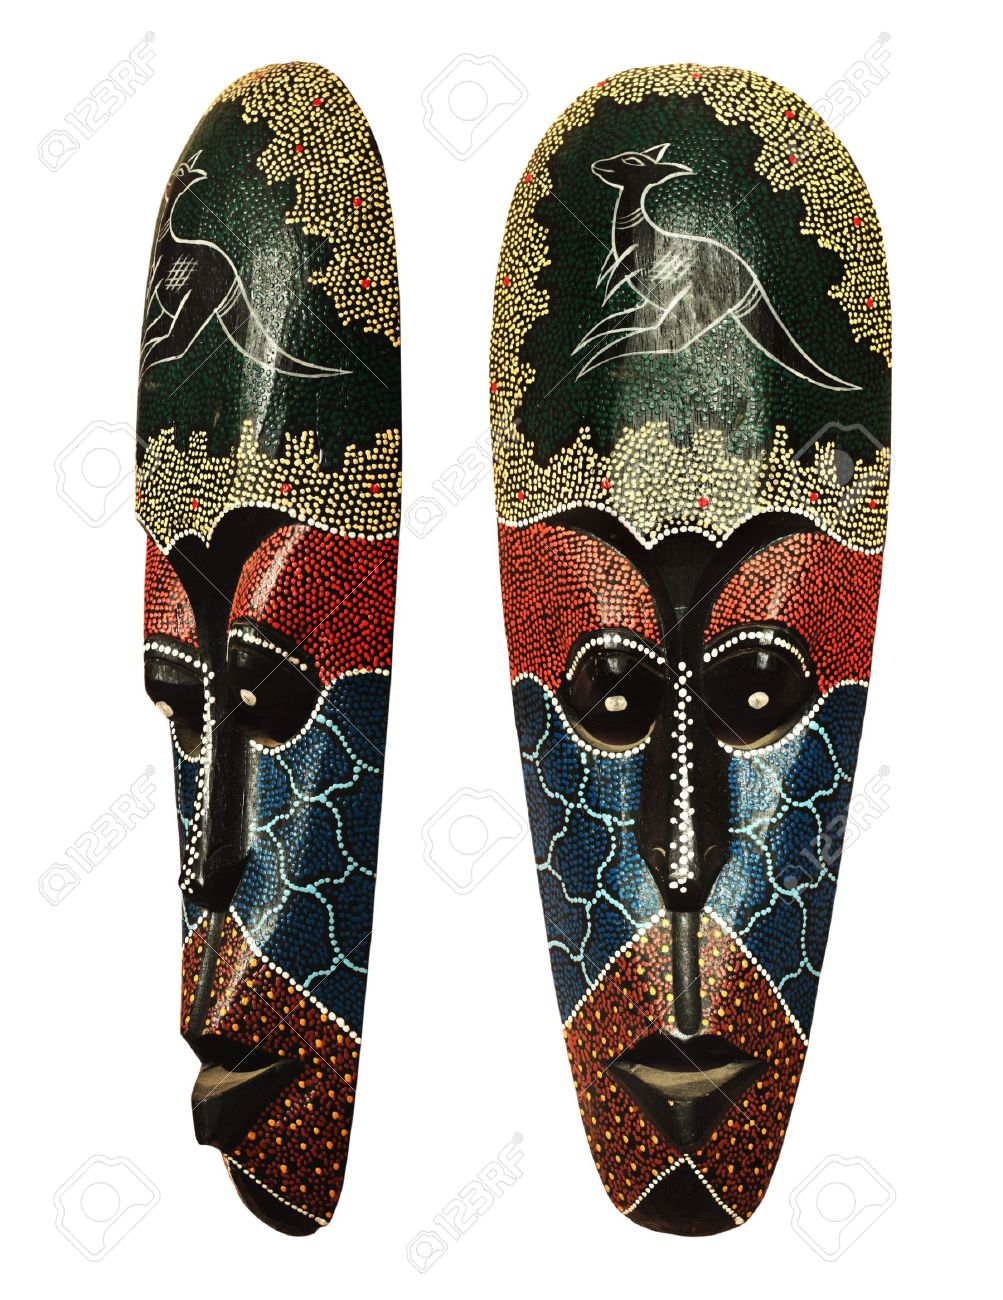 Wooden Mask Of Aboriginal Idol Indigenous Woodcraft From